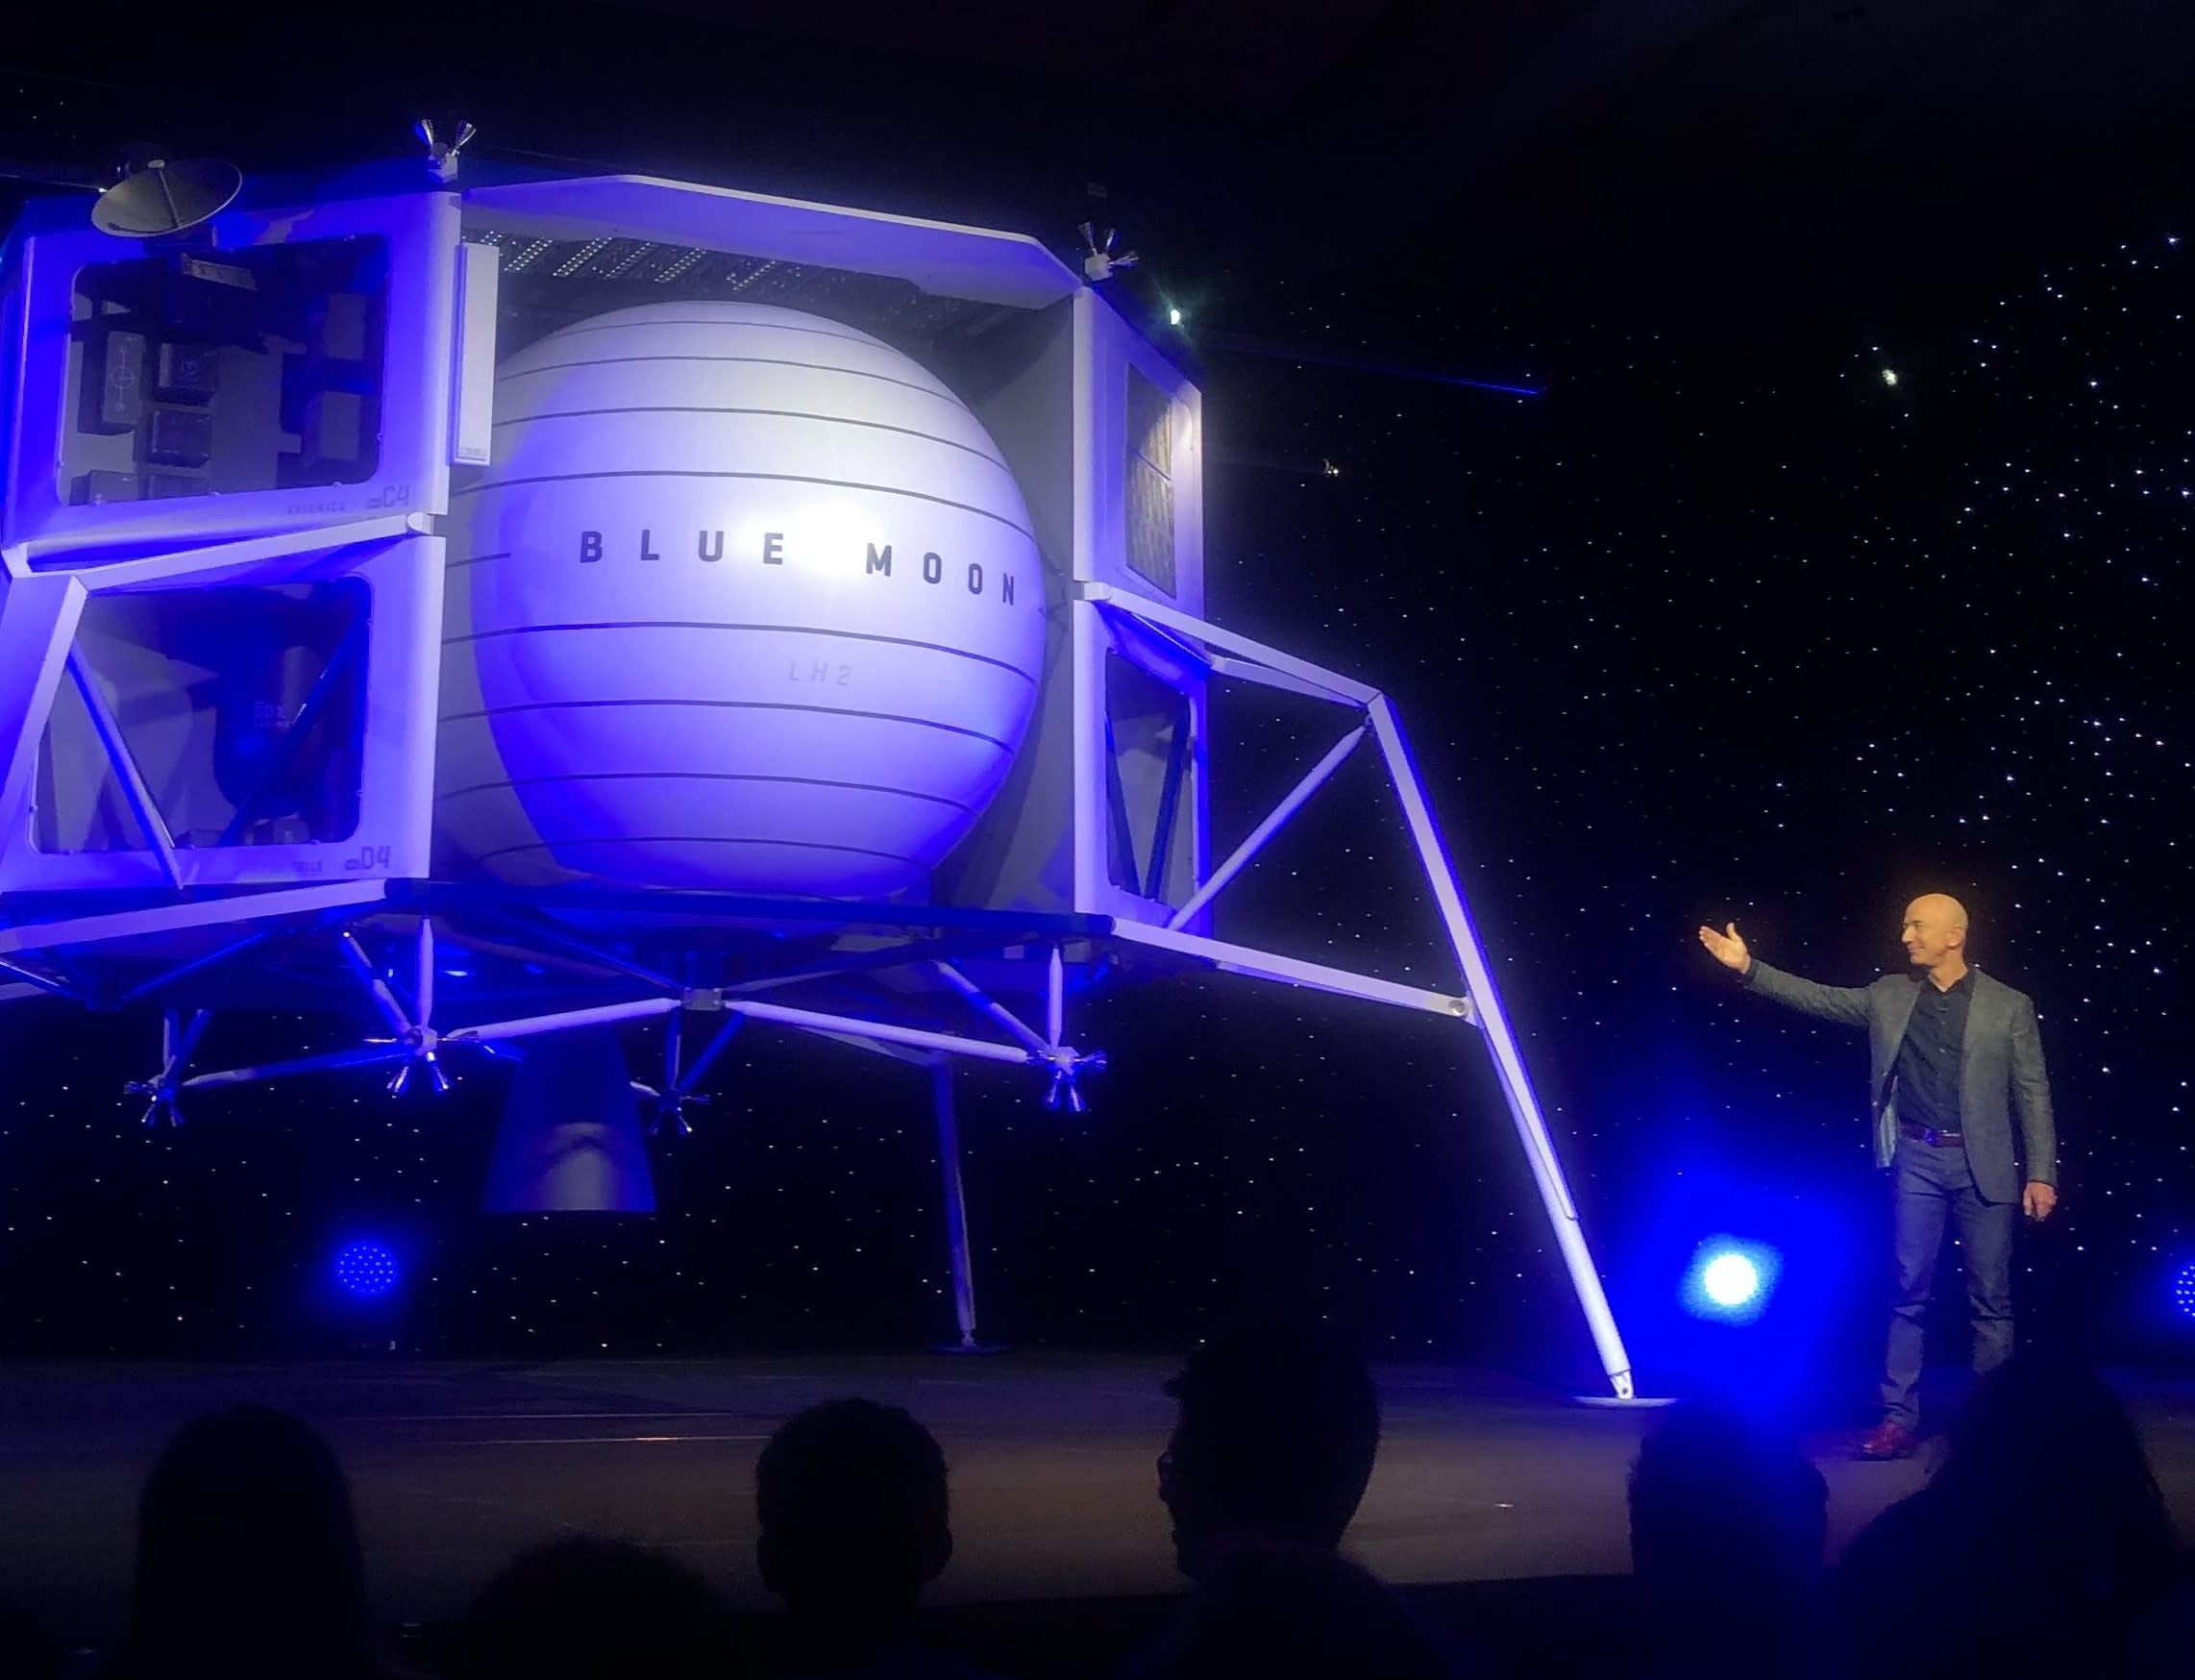 Blue Origin founder Jeff Bezos unveils the company's lunar lander.